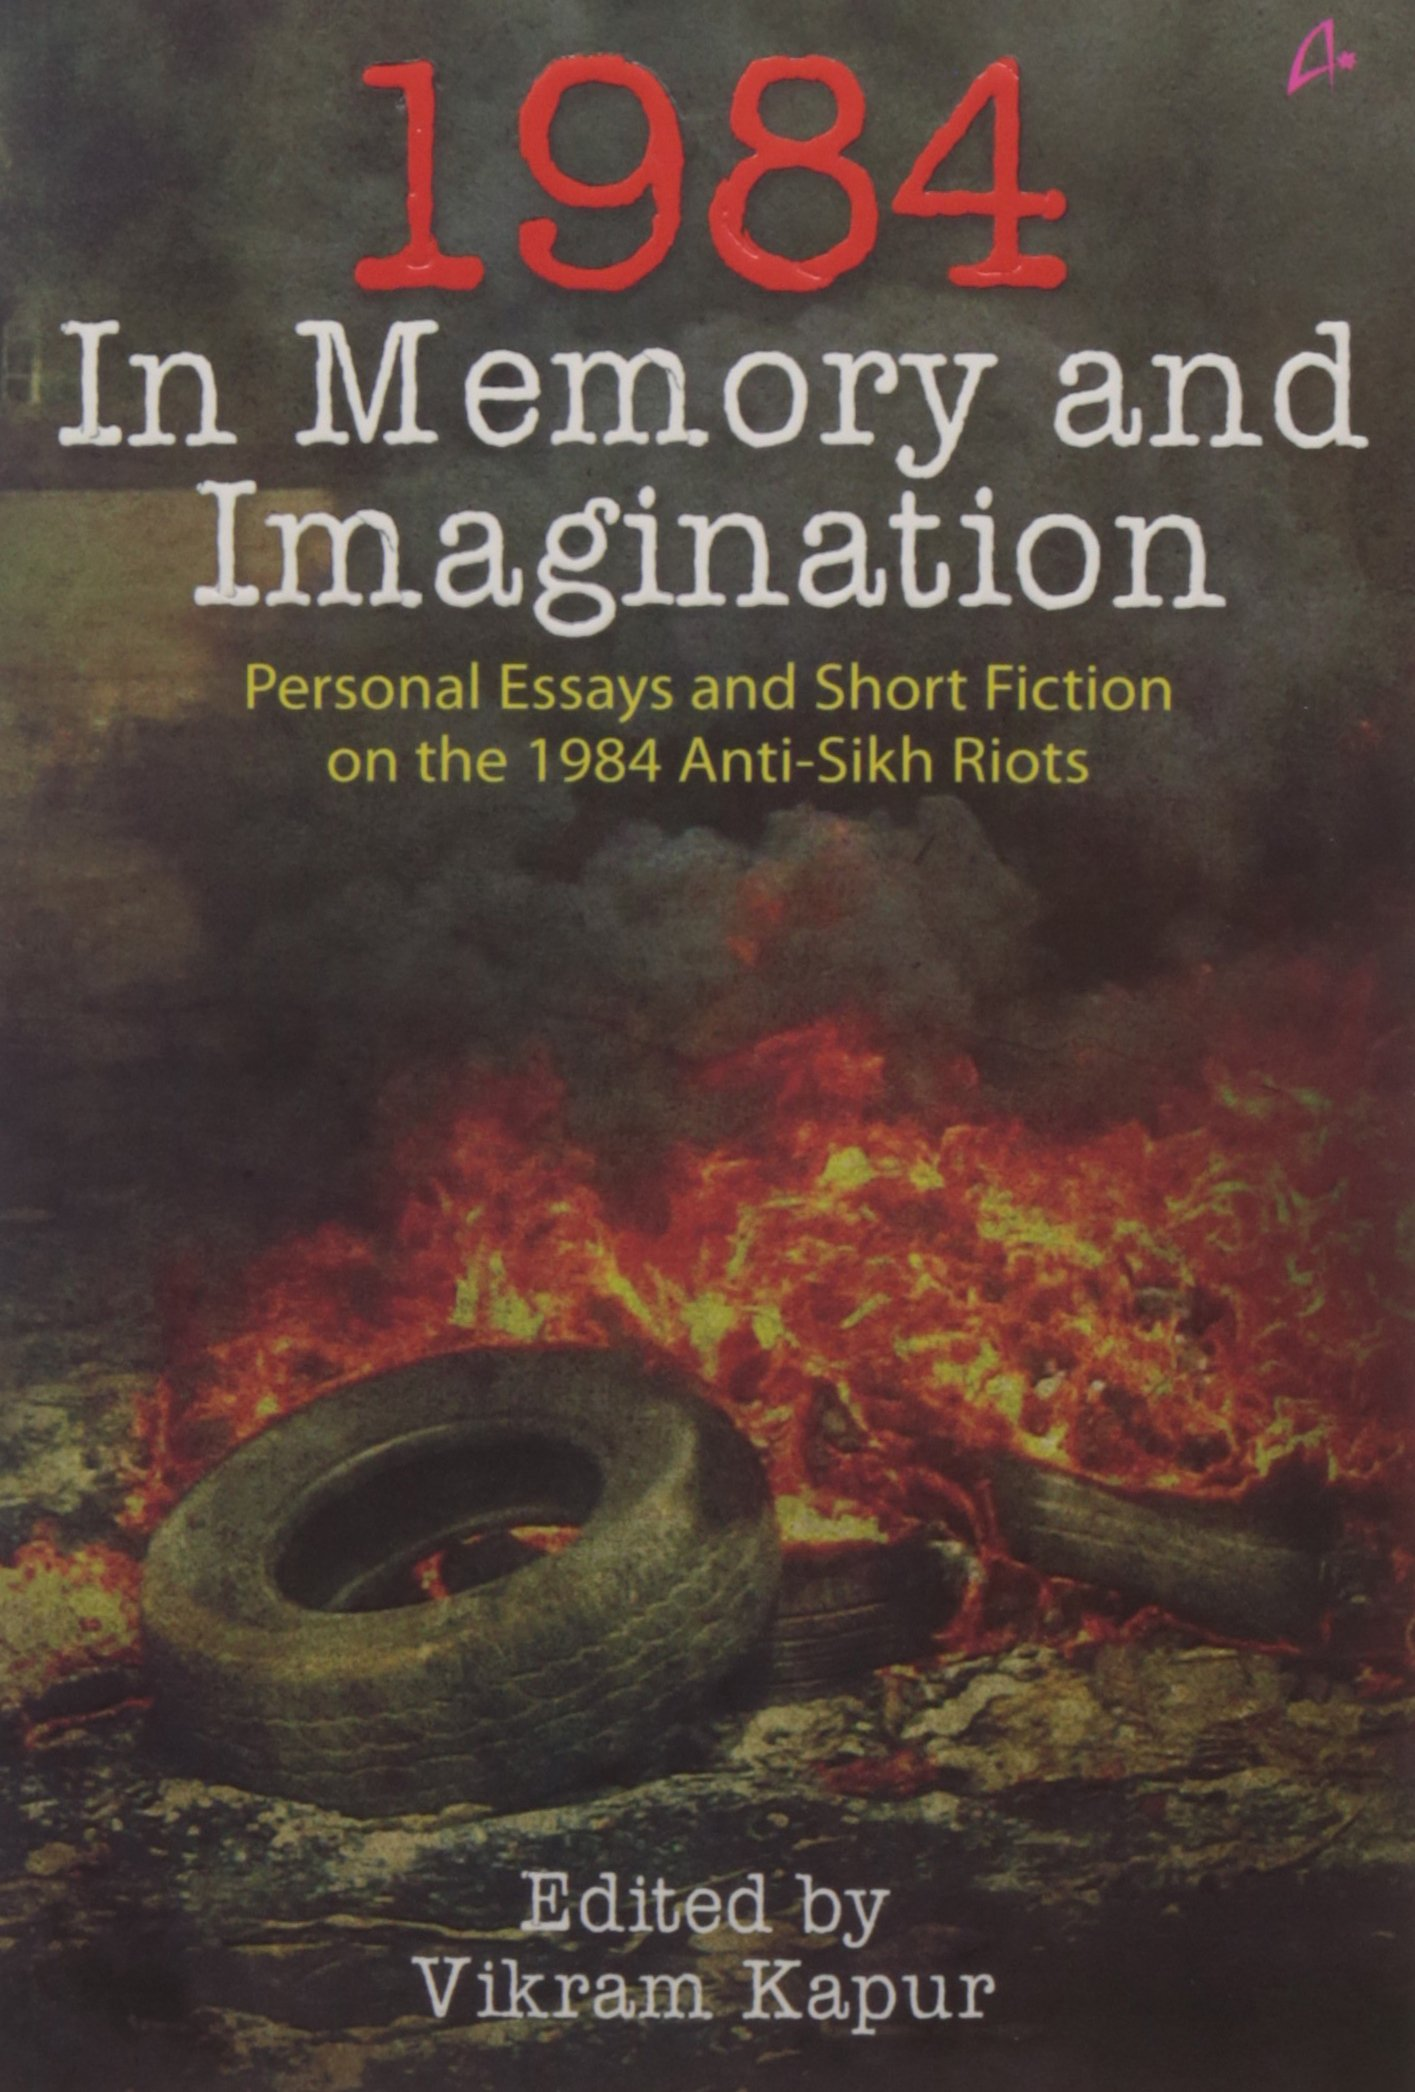 buy in memory and imagination personal essays and stories buy 1984 in memory and imagination personal essays and stories on the 1984 anti sikh riots book online at low prices in 1984 in memory and